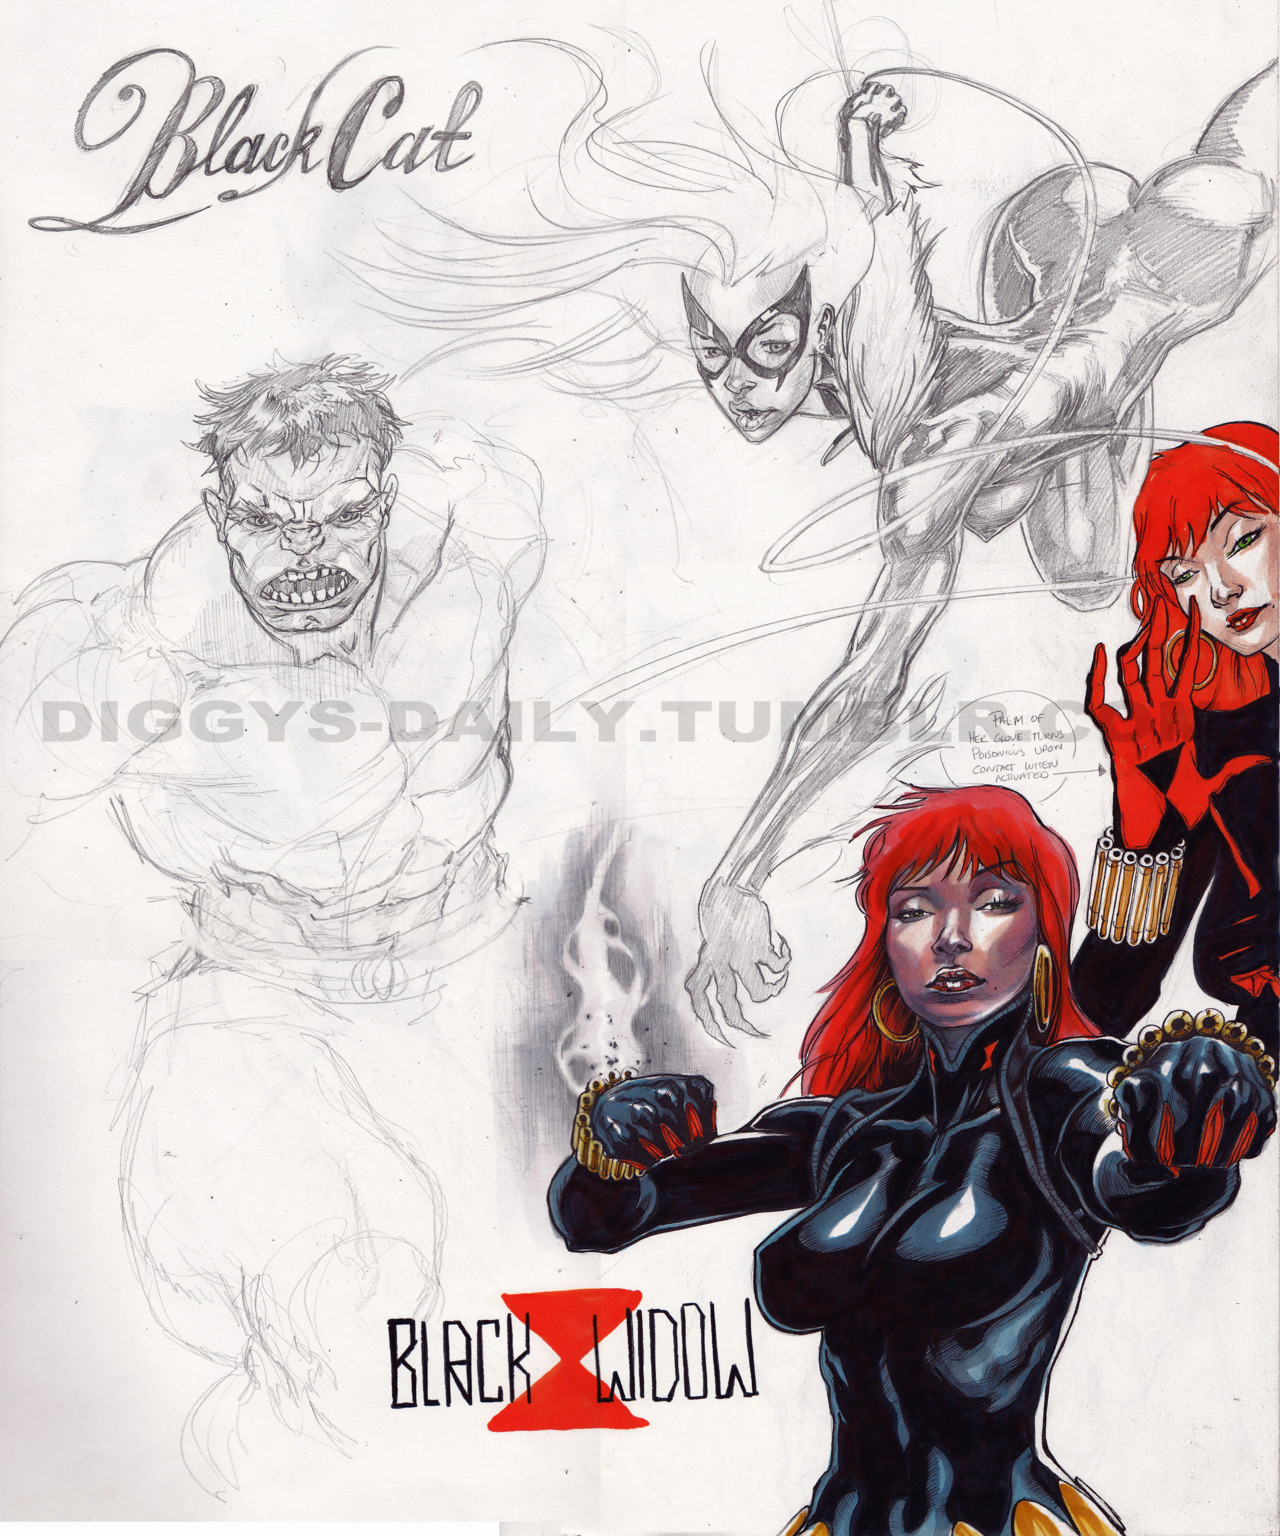 SKETCH OF THE DAY: BLACK WIDOW & BLACK CAT